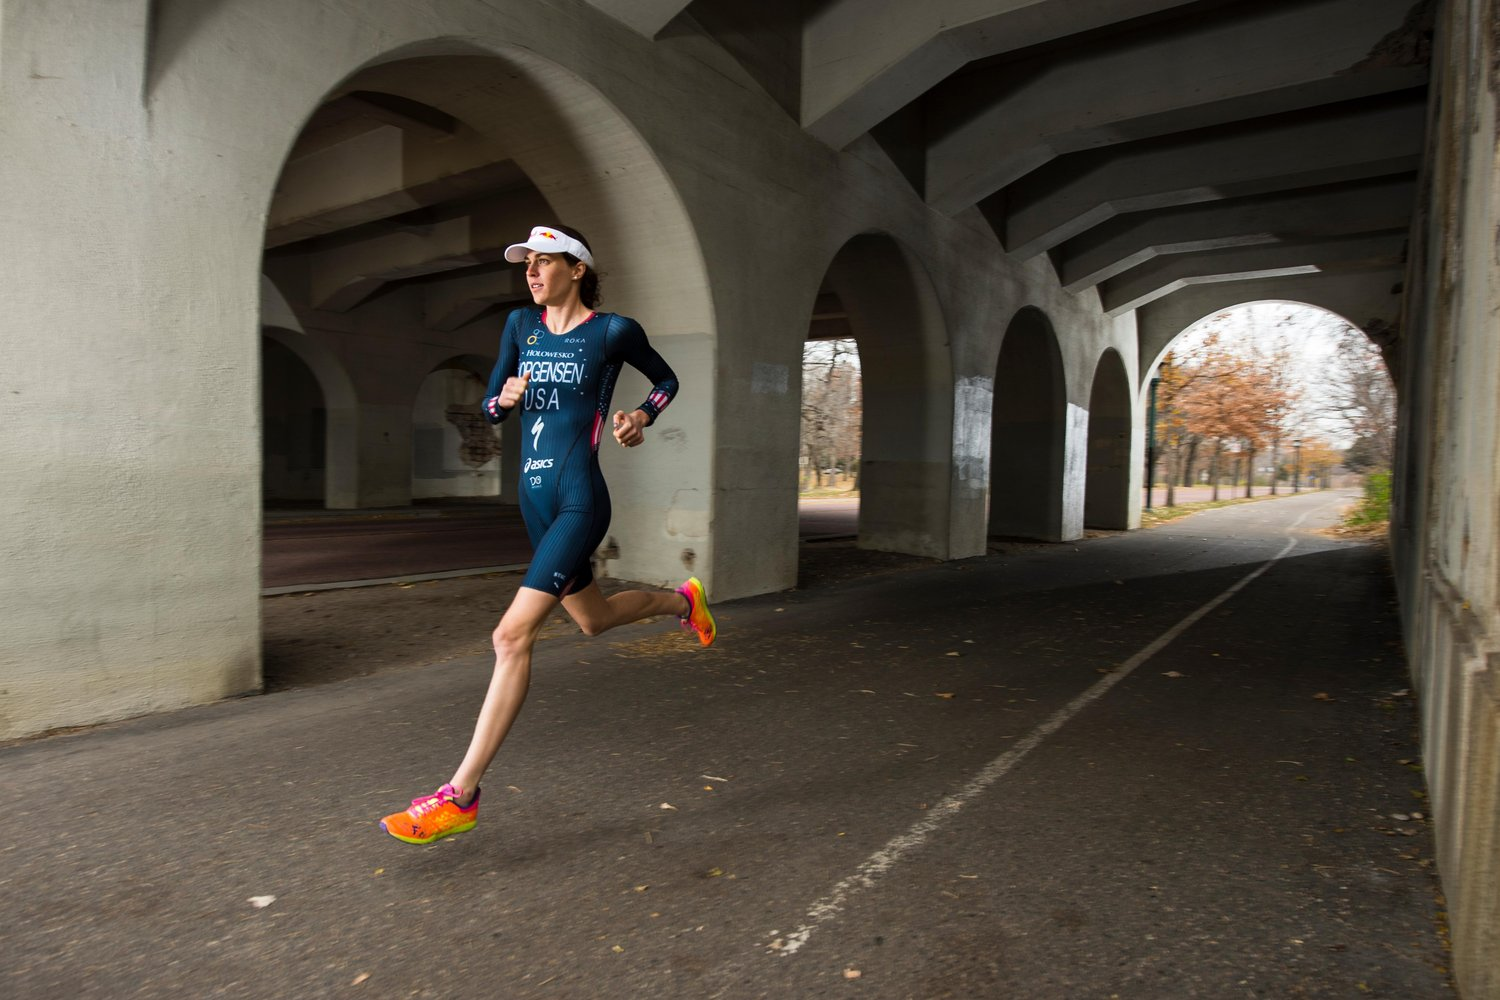 Gwen Jorgensen on a training run in Minneapolis, MN on 03 November 2014